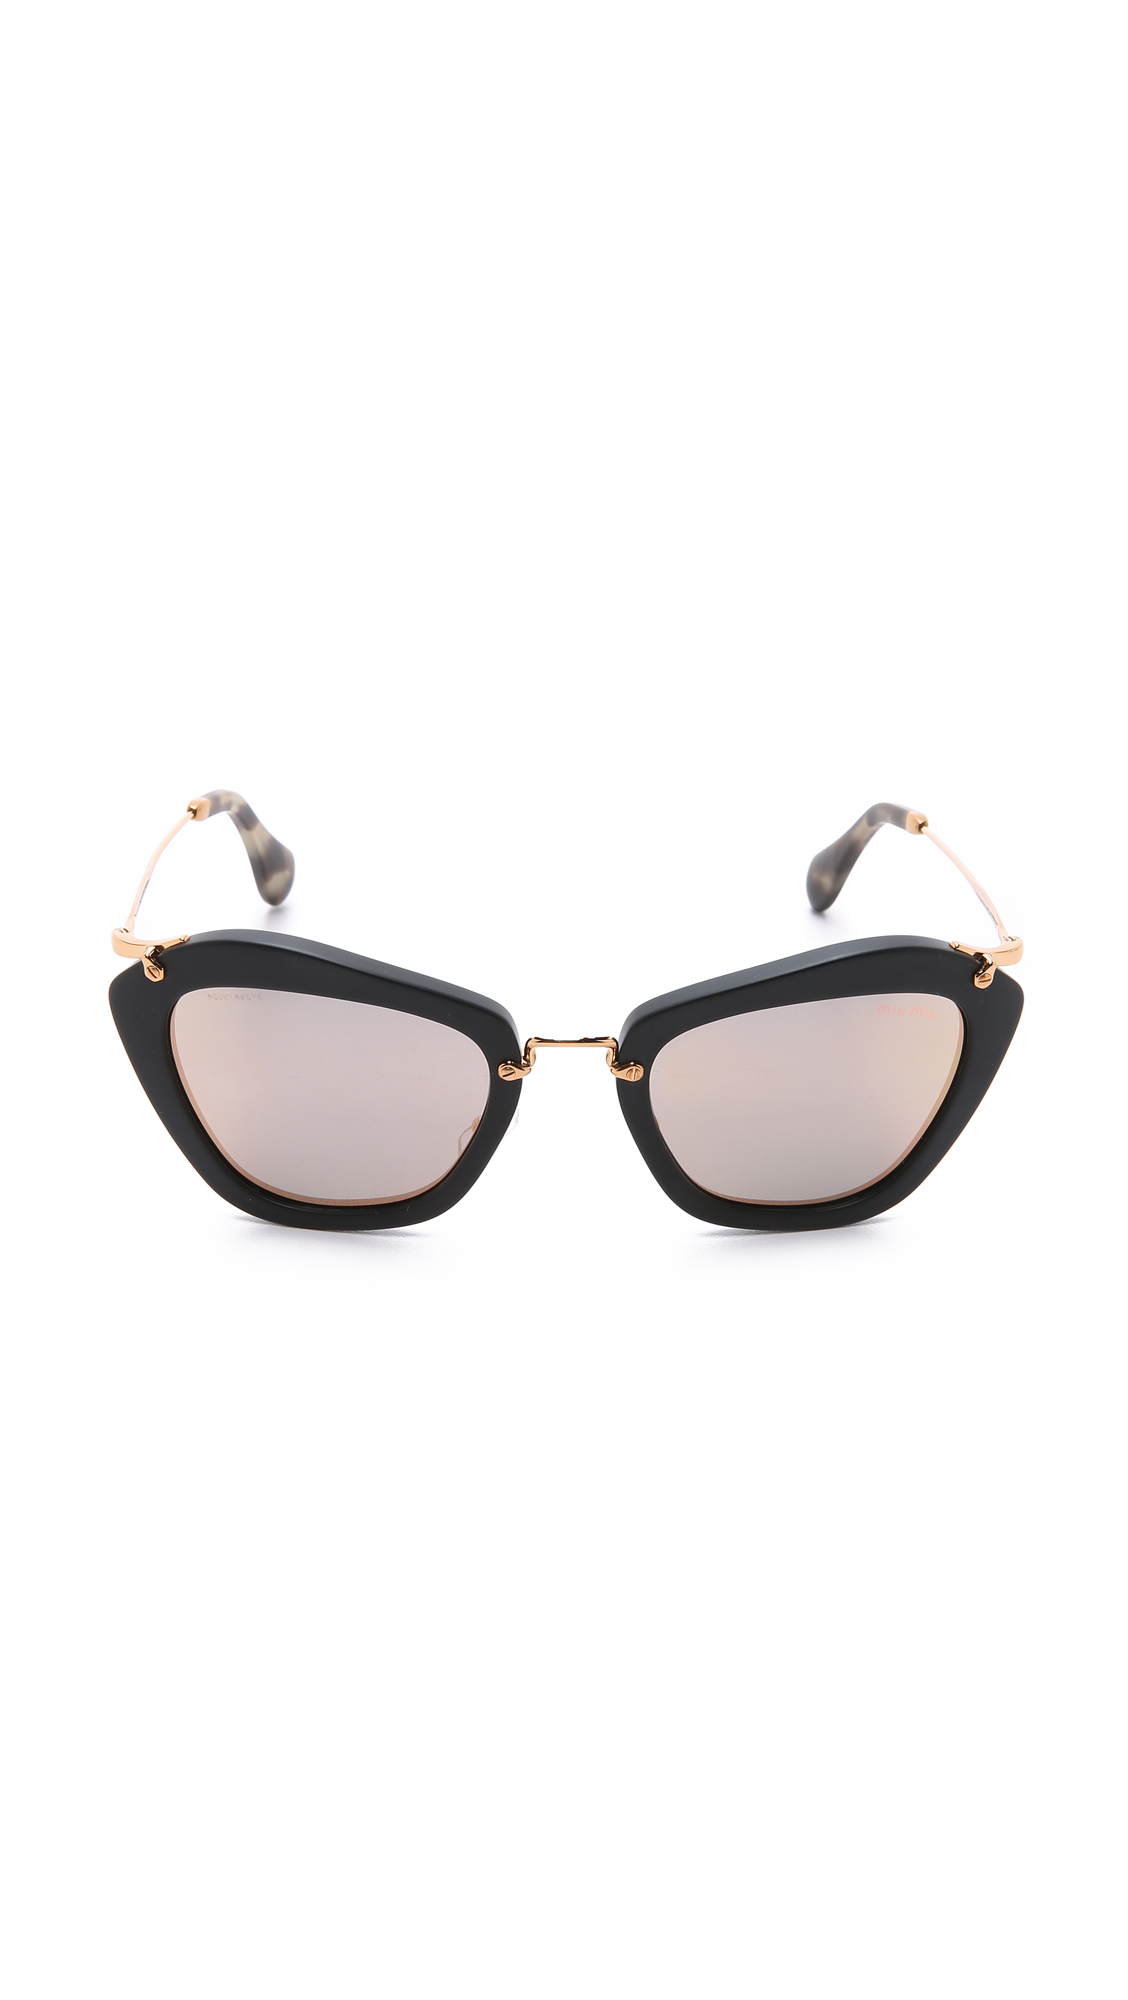 6262a4bb8b739 Miu Miu Sunglasses Cat Eye Black